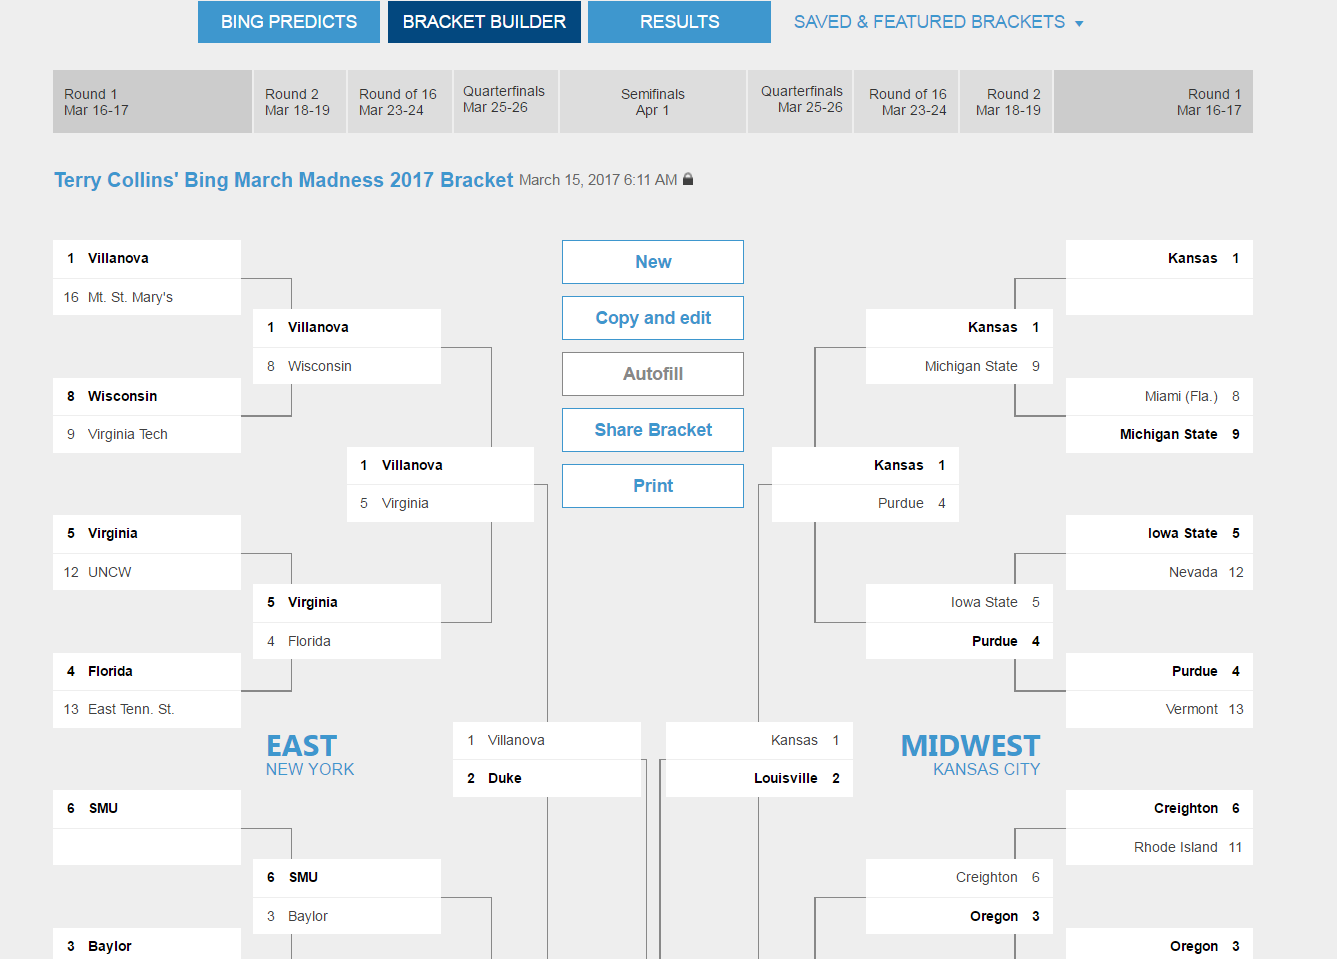 terrycollinsbingmarchmadnessbracket.png